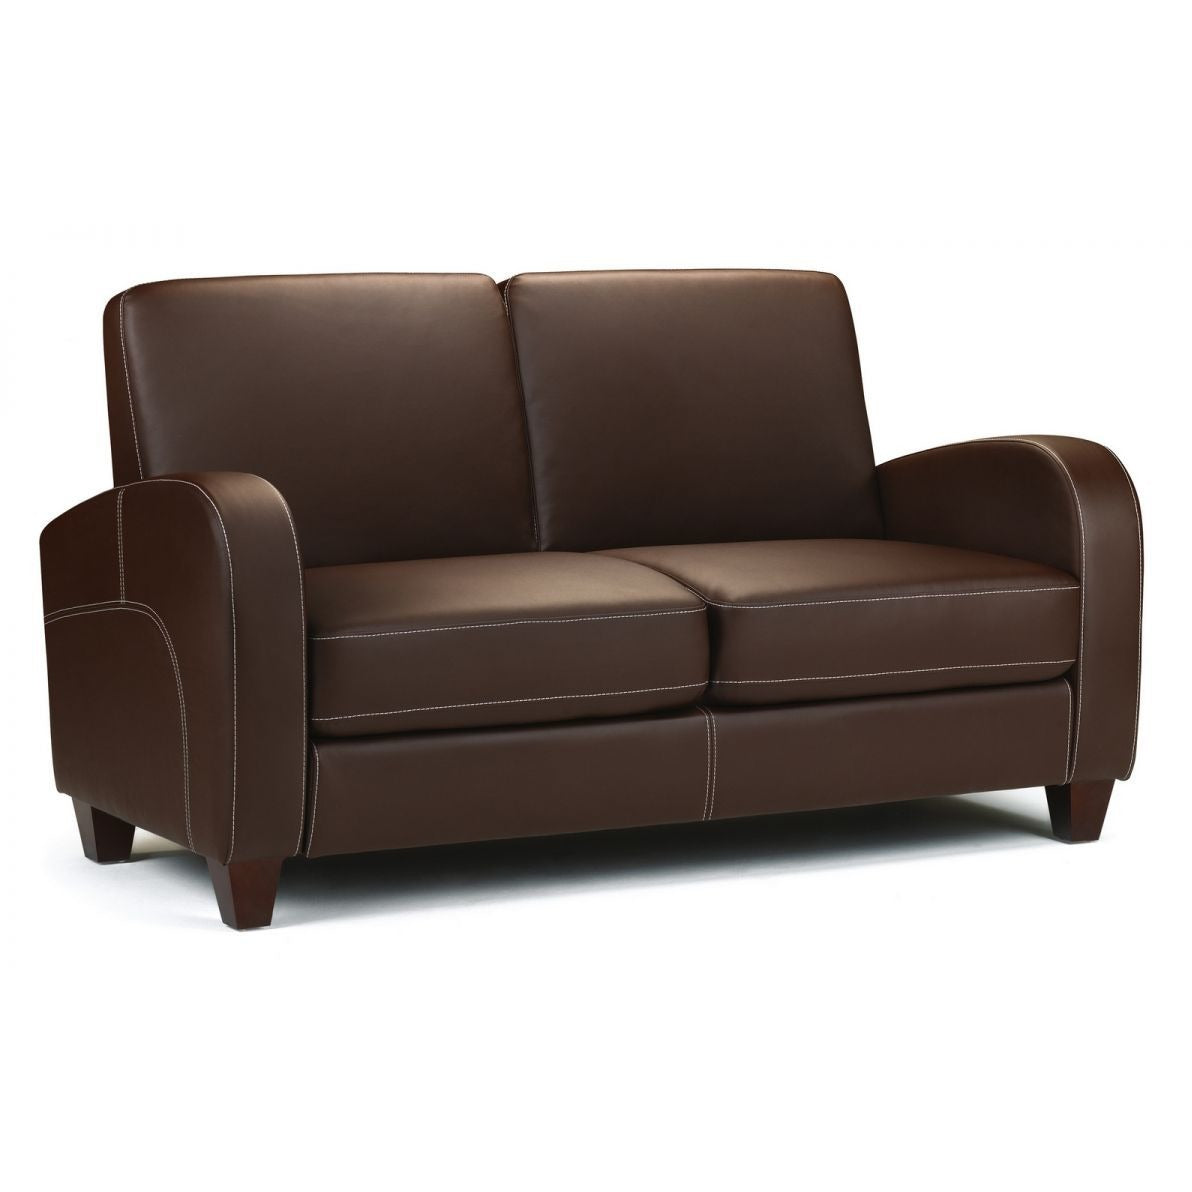 Vivo 2 Seater Sofa in Chestnut Faux Leather - Perfectly Home Interiors